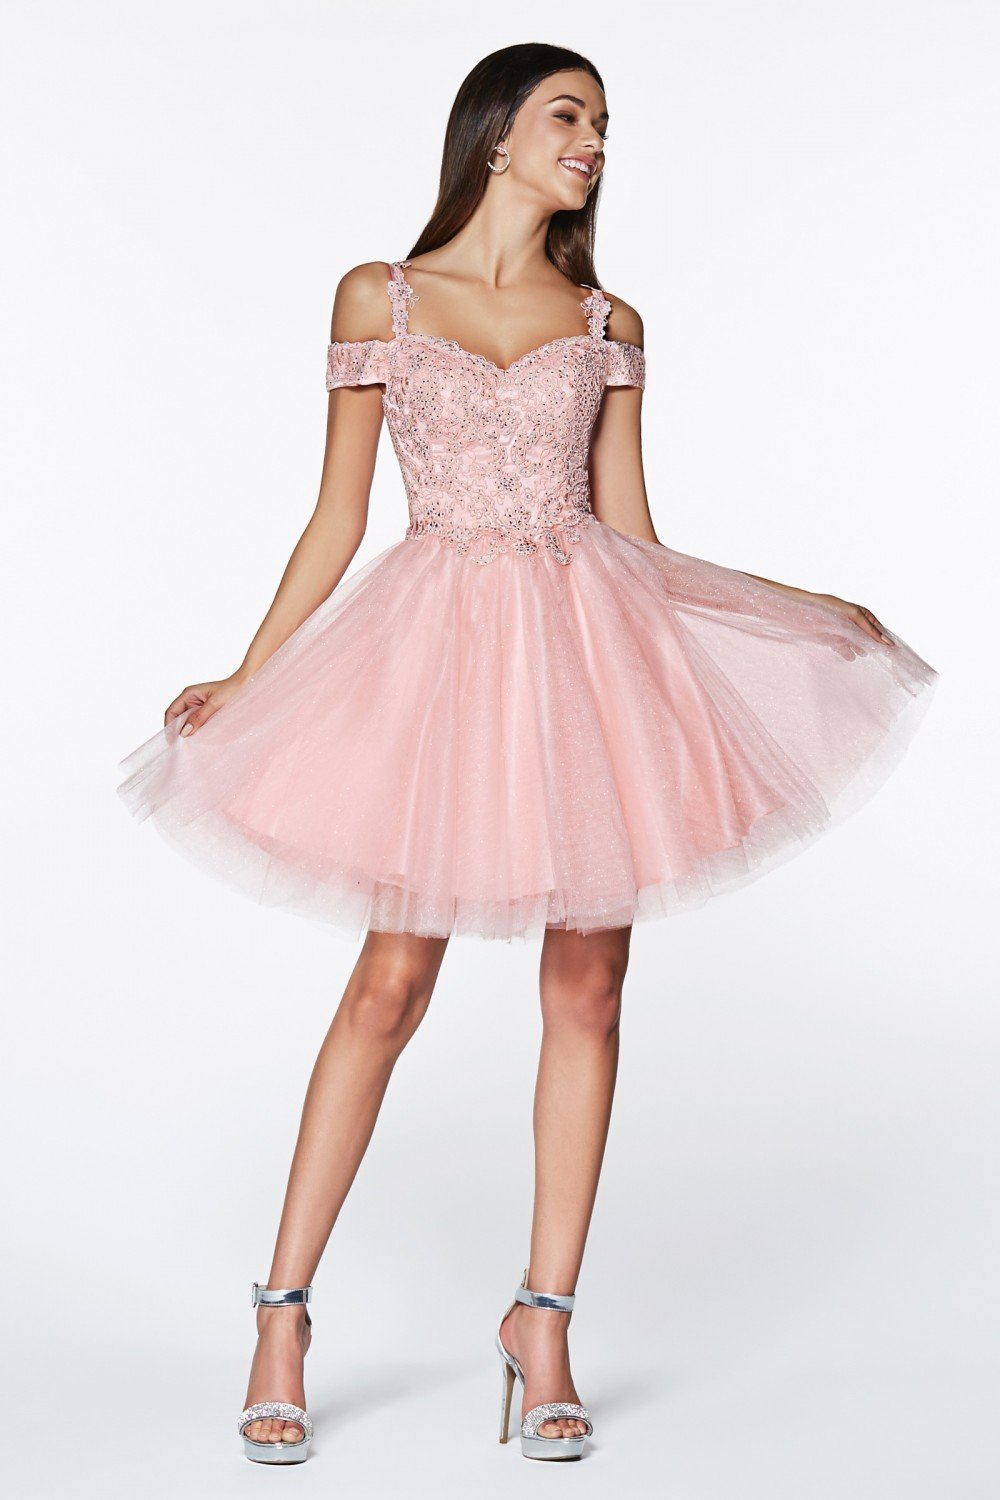 Cinderella Divine - CD0132 Cold Shoulder Lace and Glitter Tulle Cocktail Dress In Pink